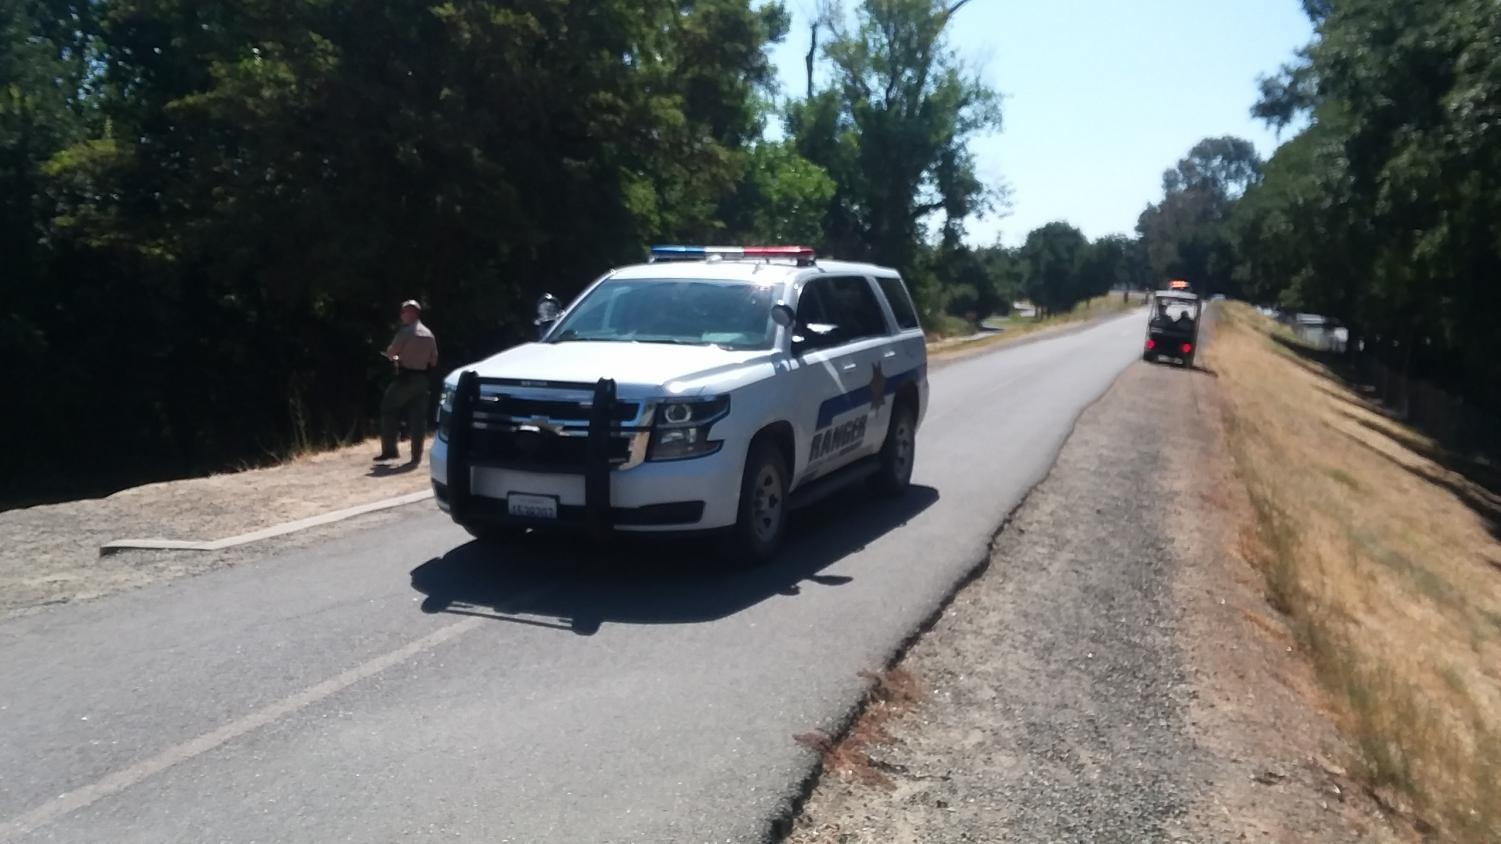 Sacramento County Park Rangers assist the Sacramento State Police Department and Sacramento police apprehend a suspect who fled into the American River on Tuesday, August 20. The suspect fled downstream onto an island north of the J-Street Bridge where he surrendered to police.